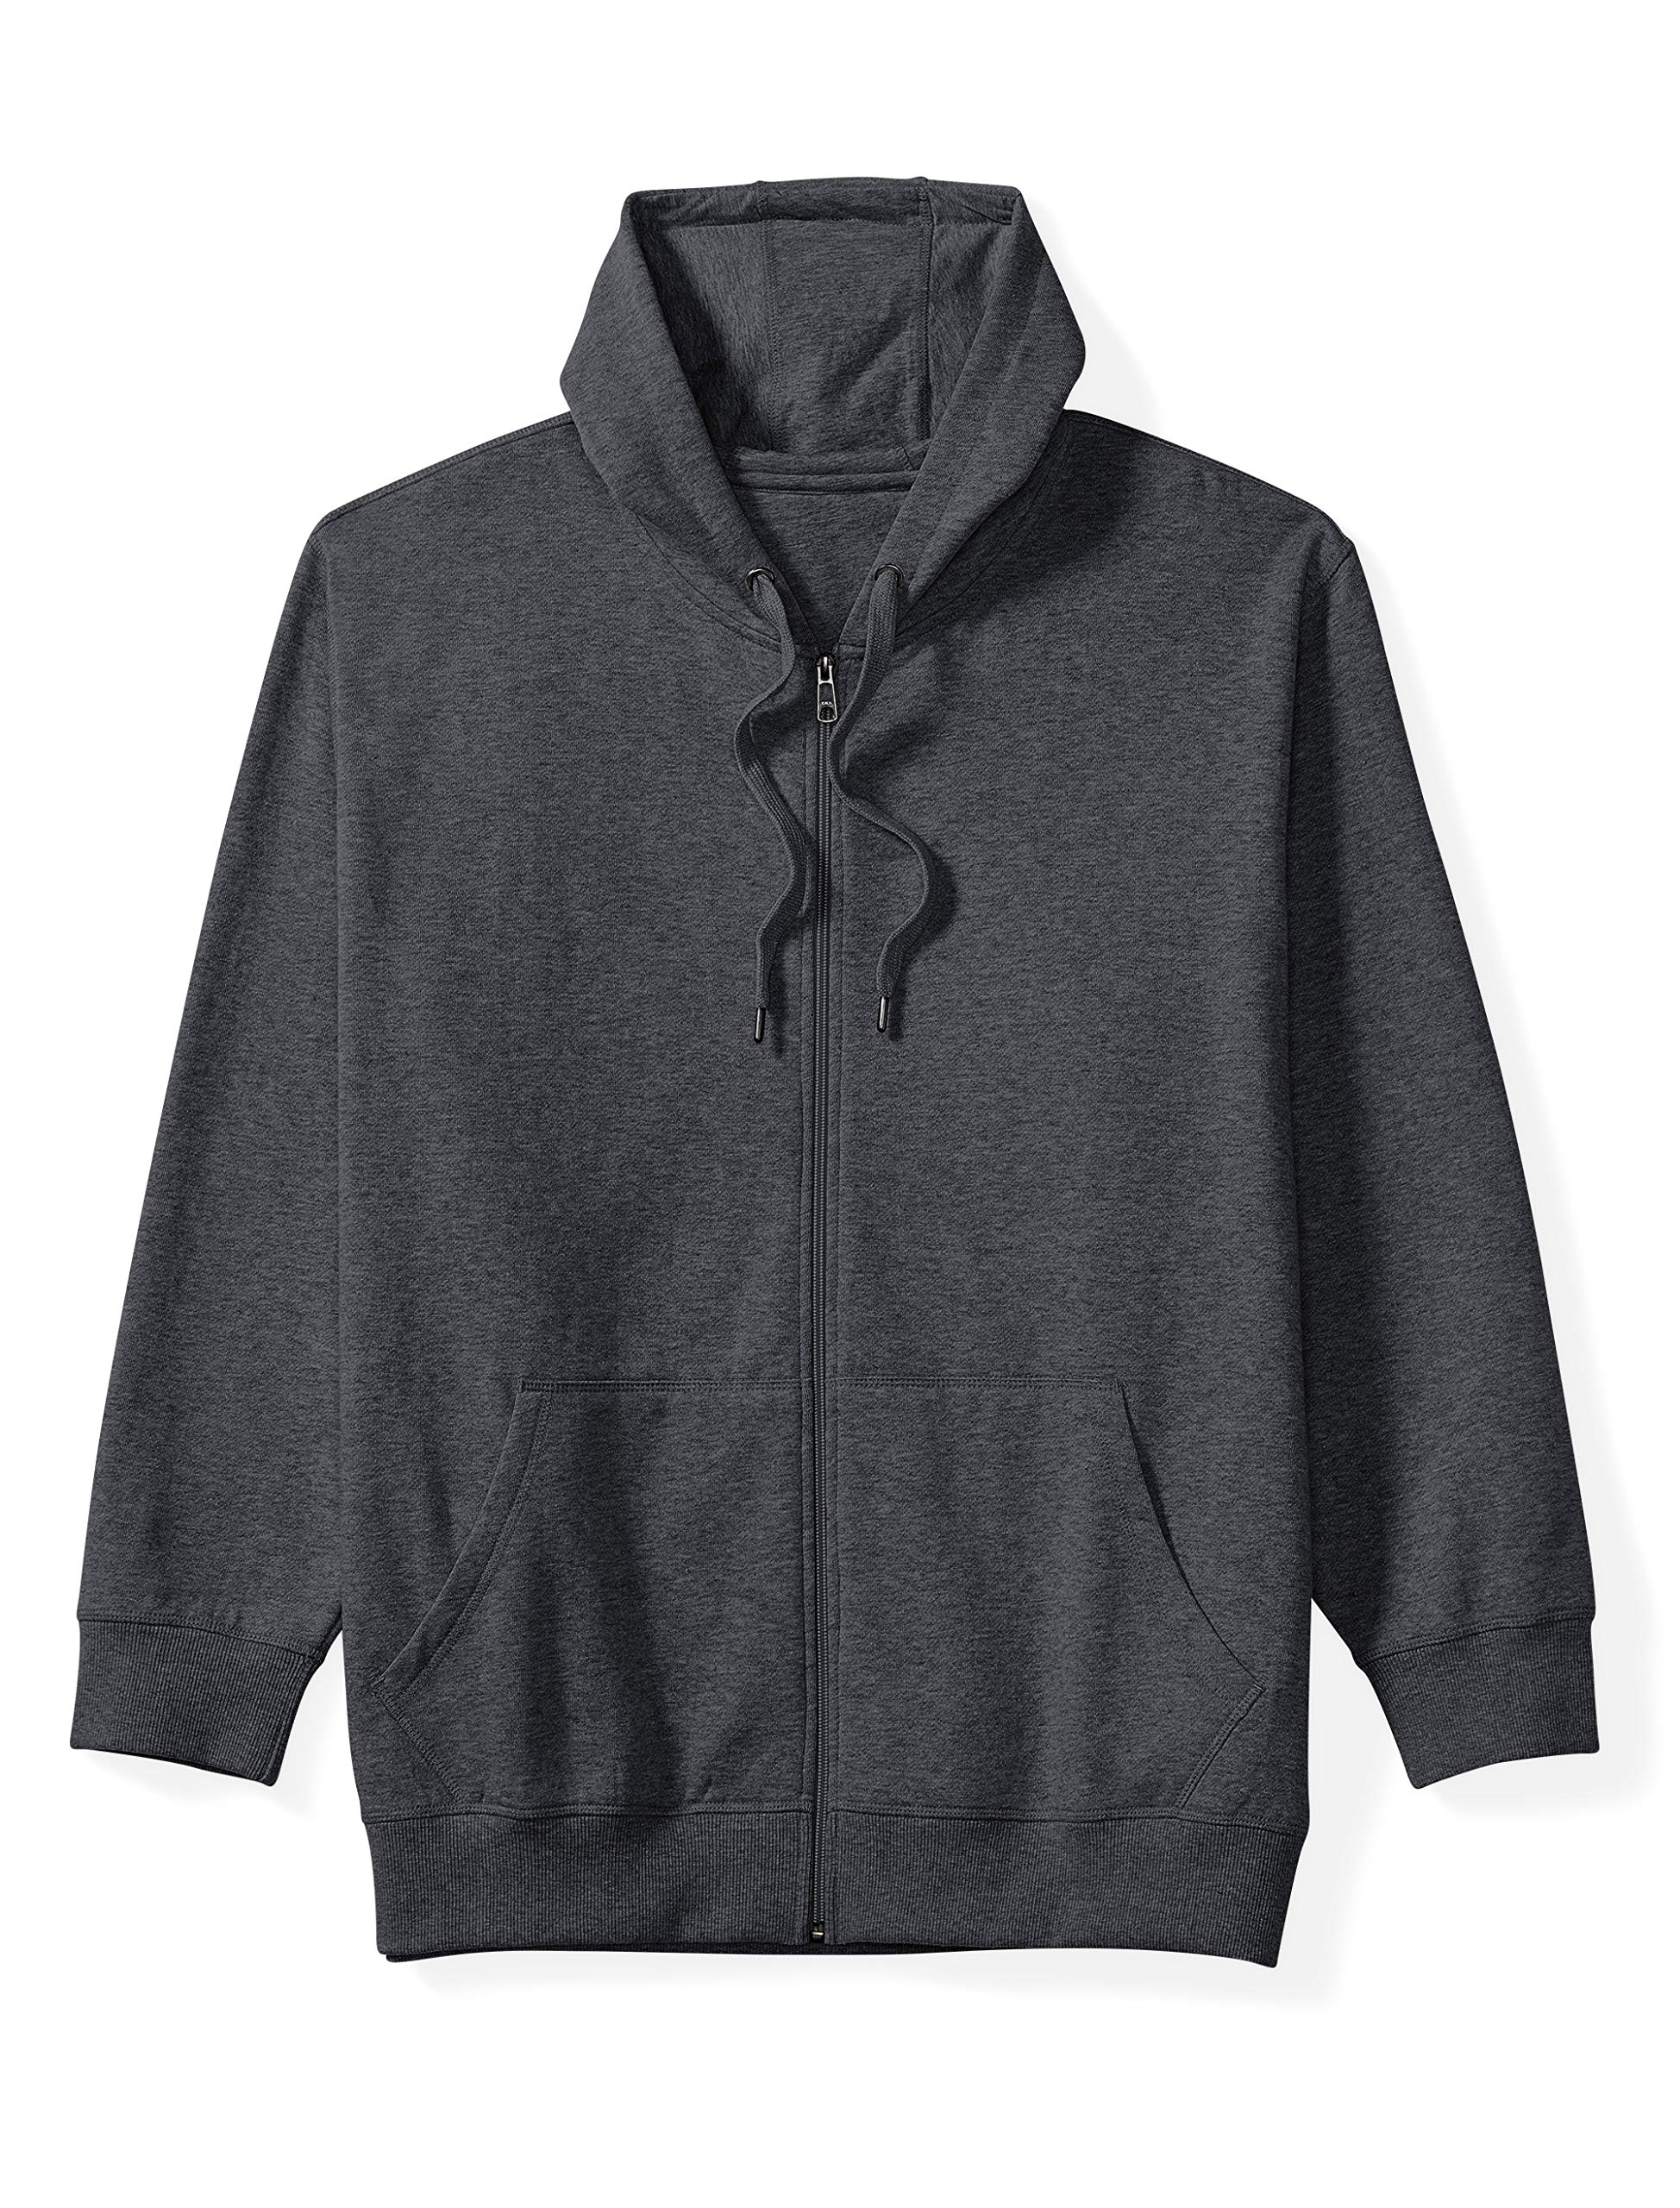 Amazon Essentials Men's Big and Tall Full-Zip Hooded Fleece Sweatshirt fit by DXL, Charcoal Heather, 2XLT by Amazon Essentials